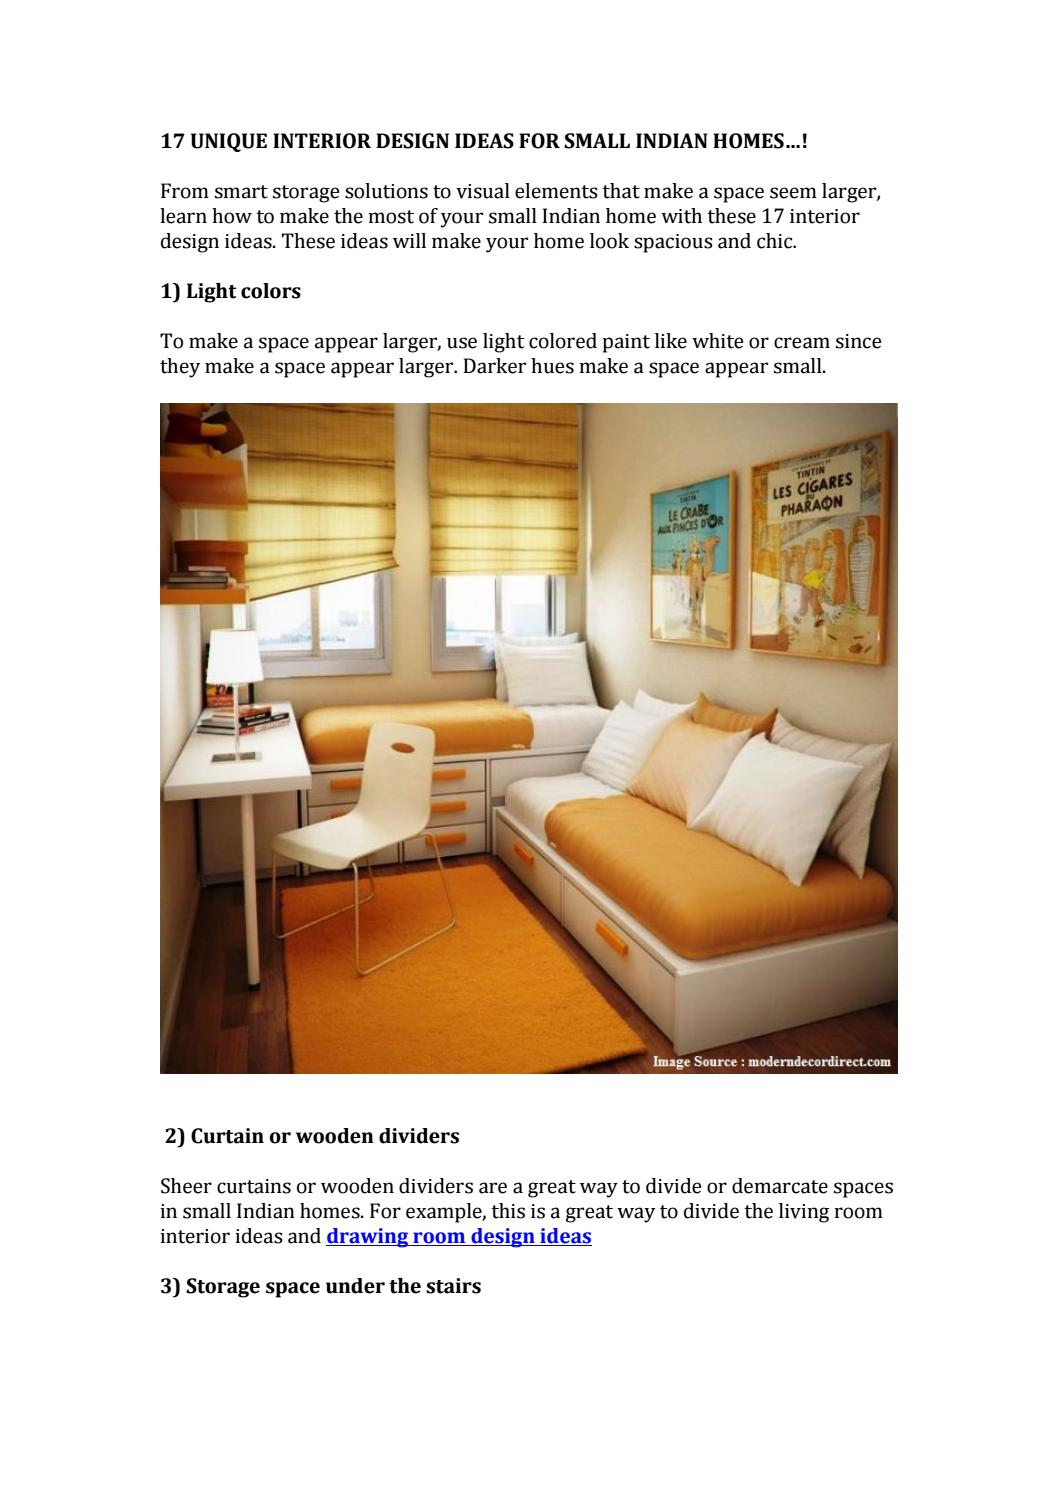 17 Unique Interior Design Ideas For Small Indian Homes Idprop Blog By Idprop Issuu